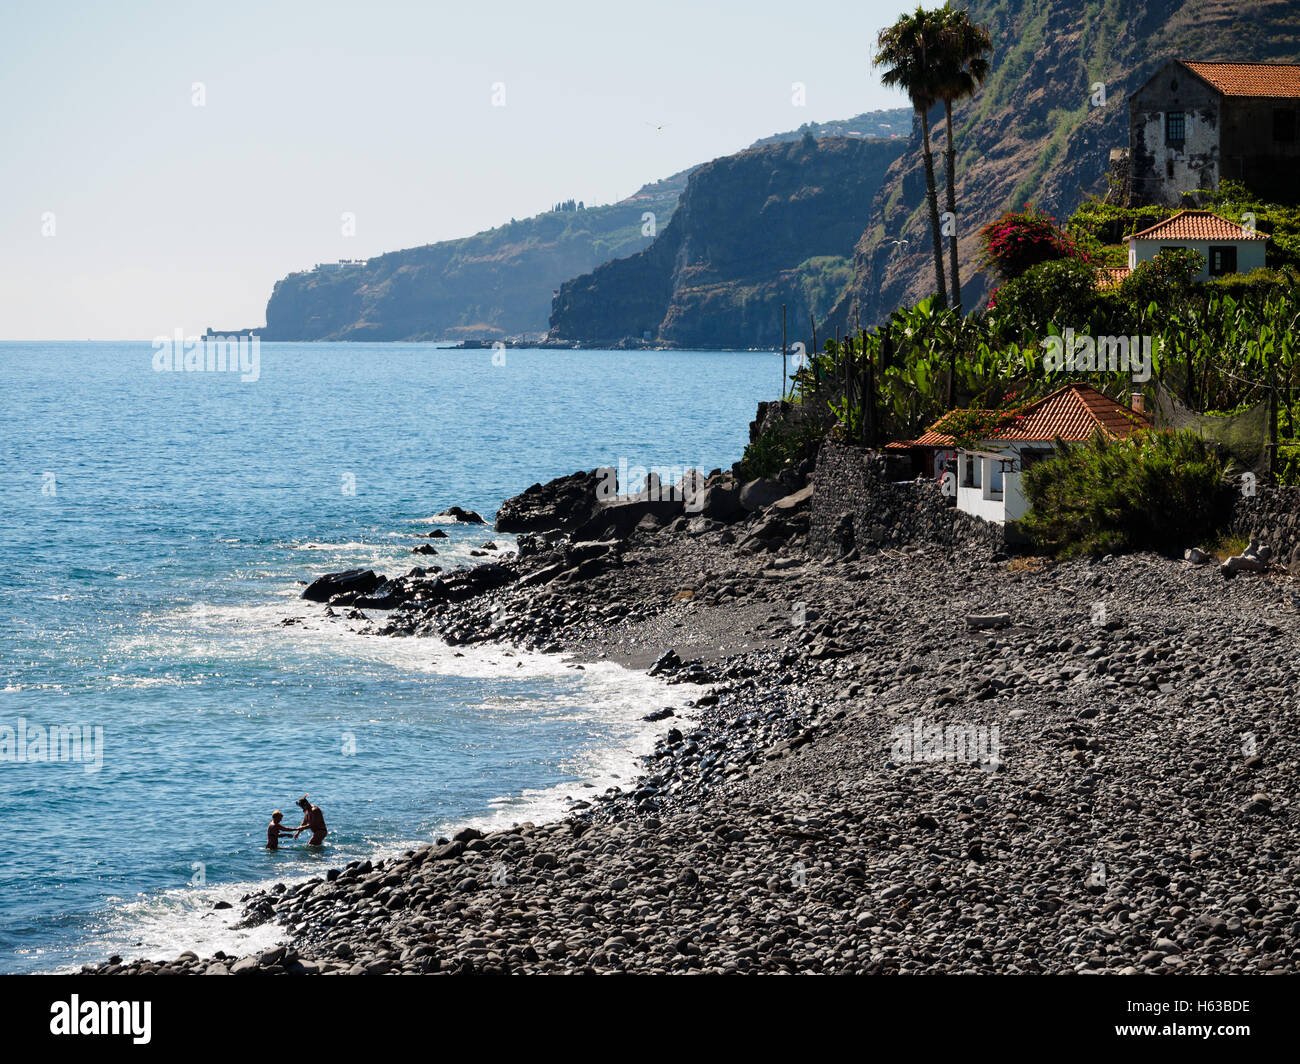 The pebble beach of Faja dos Padres on the Portuguese island of Madeira - Stock Image